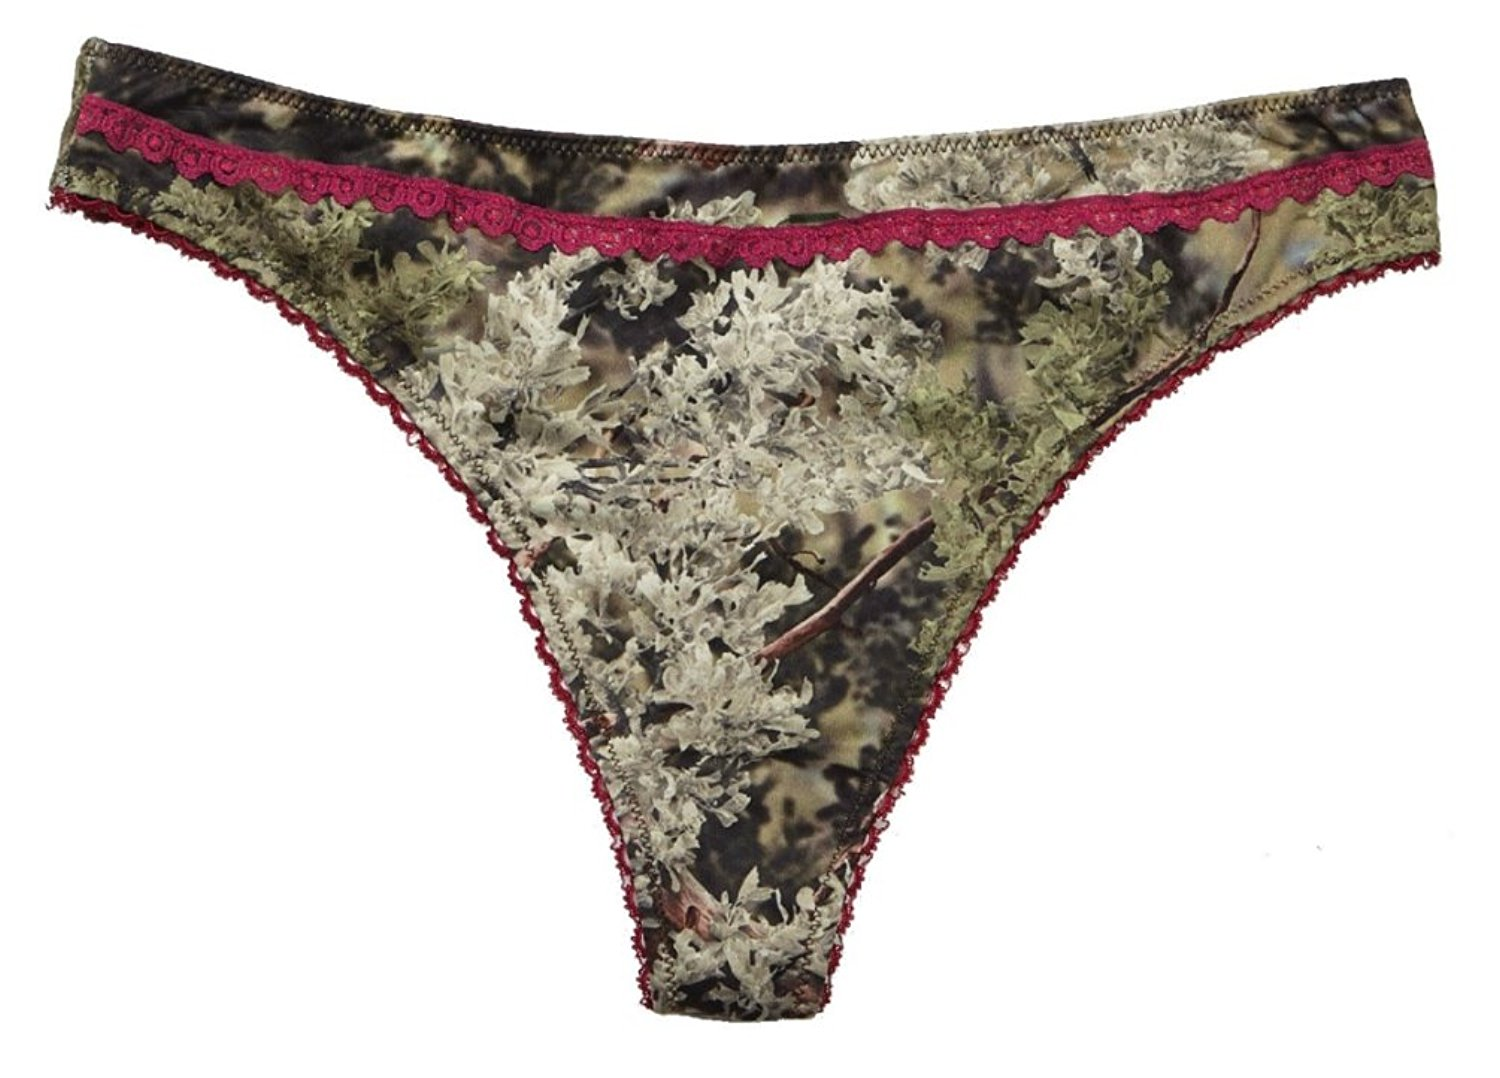 7626355b81 Get Quotations · Women s Thong Panty Kings Camo With Cranberry Accents